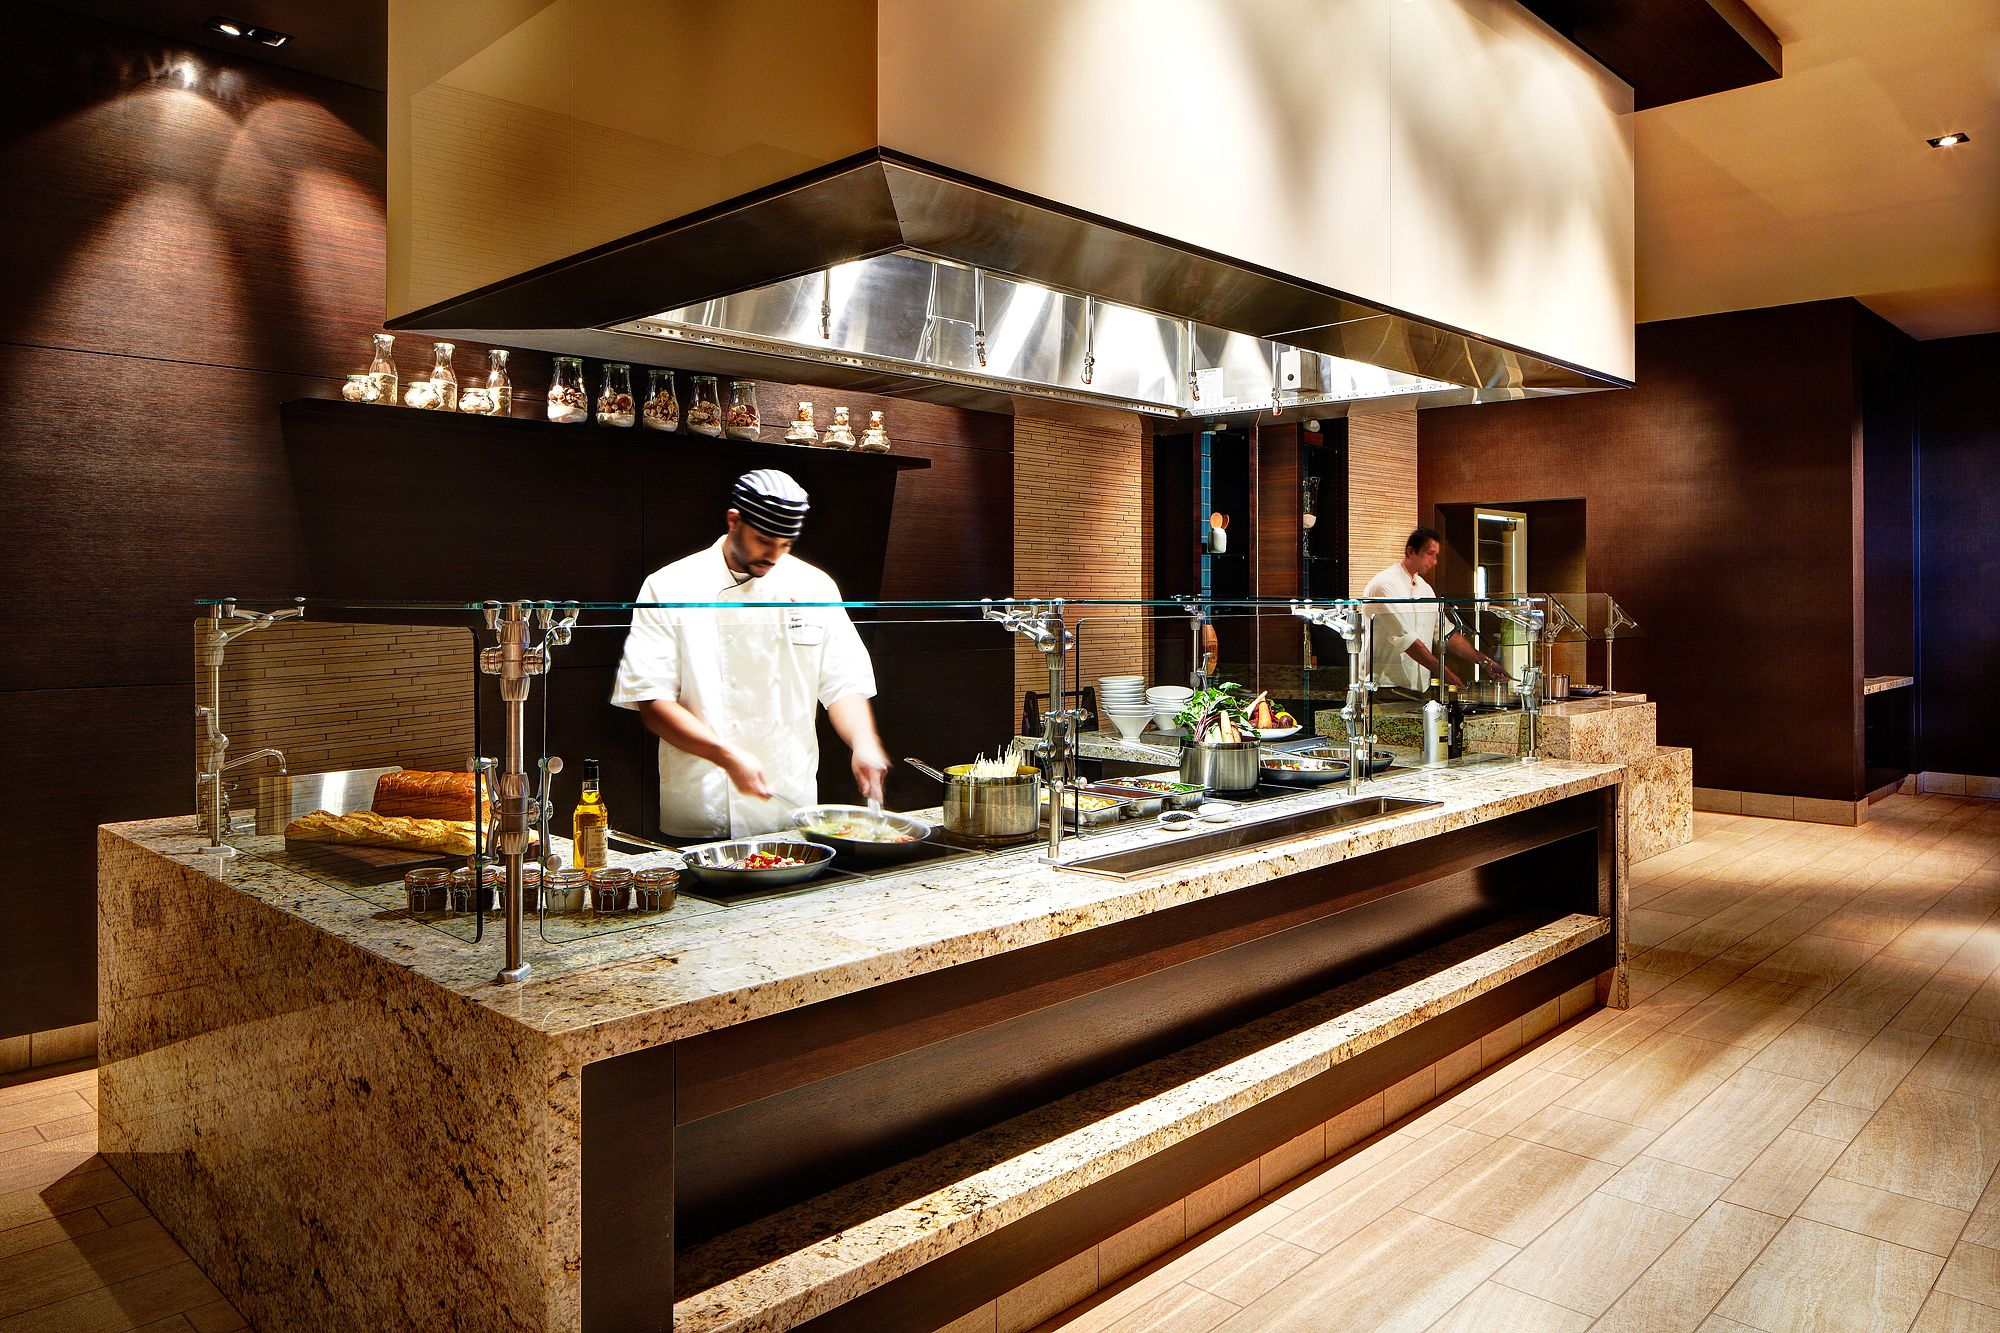 hotel with kitchen in room long light fixtures our buffet station sandiego dining restaurant